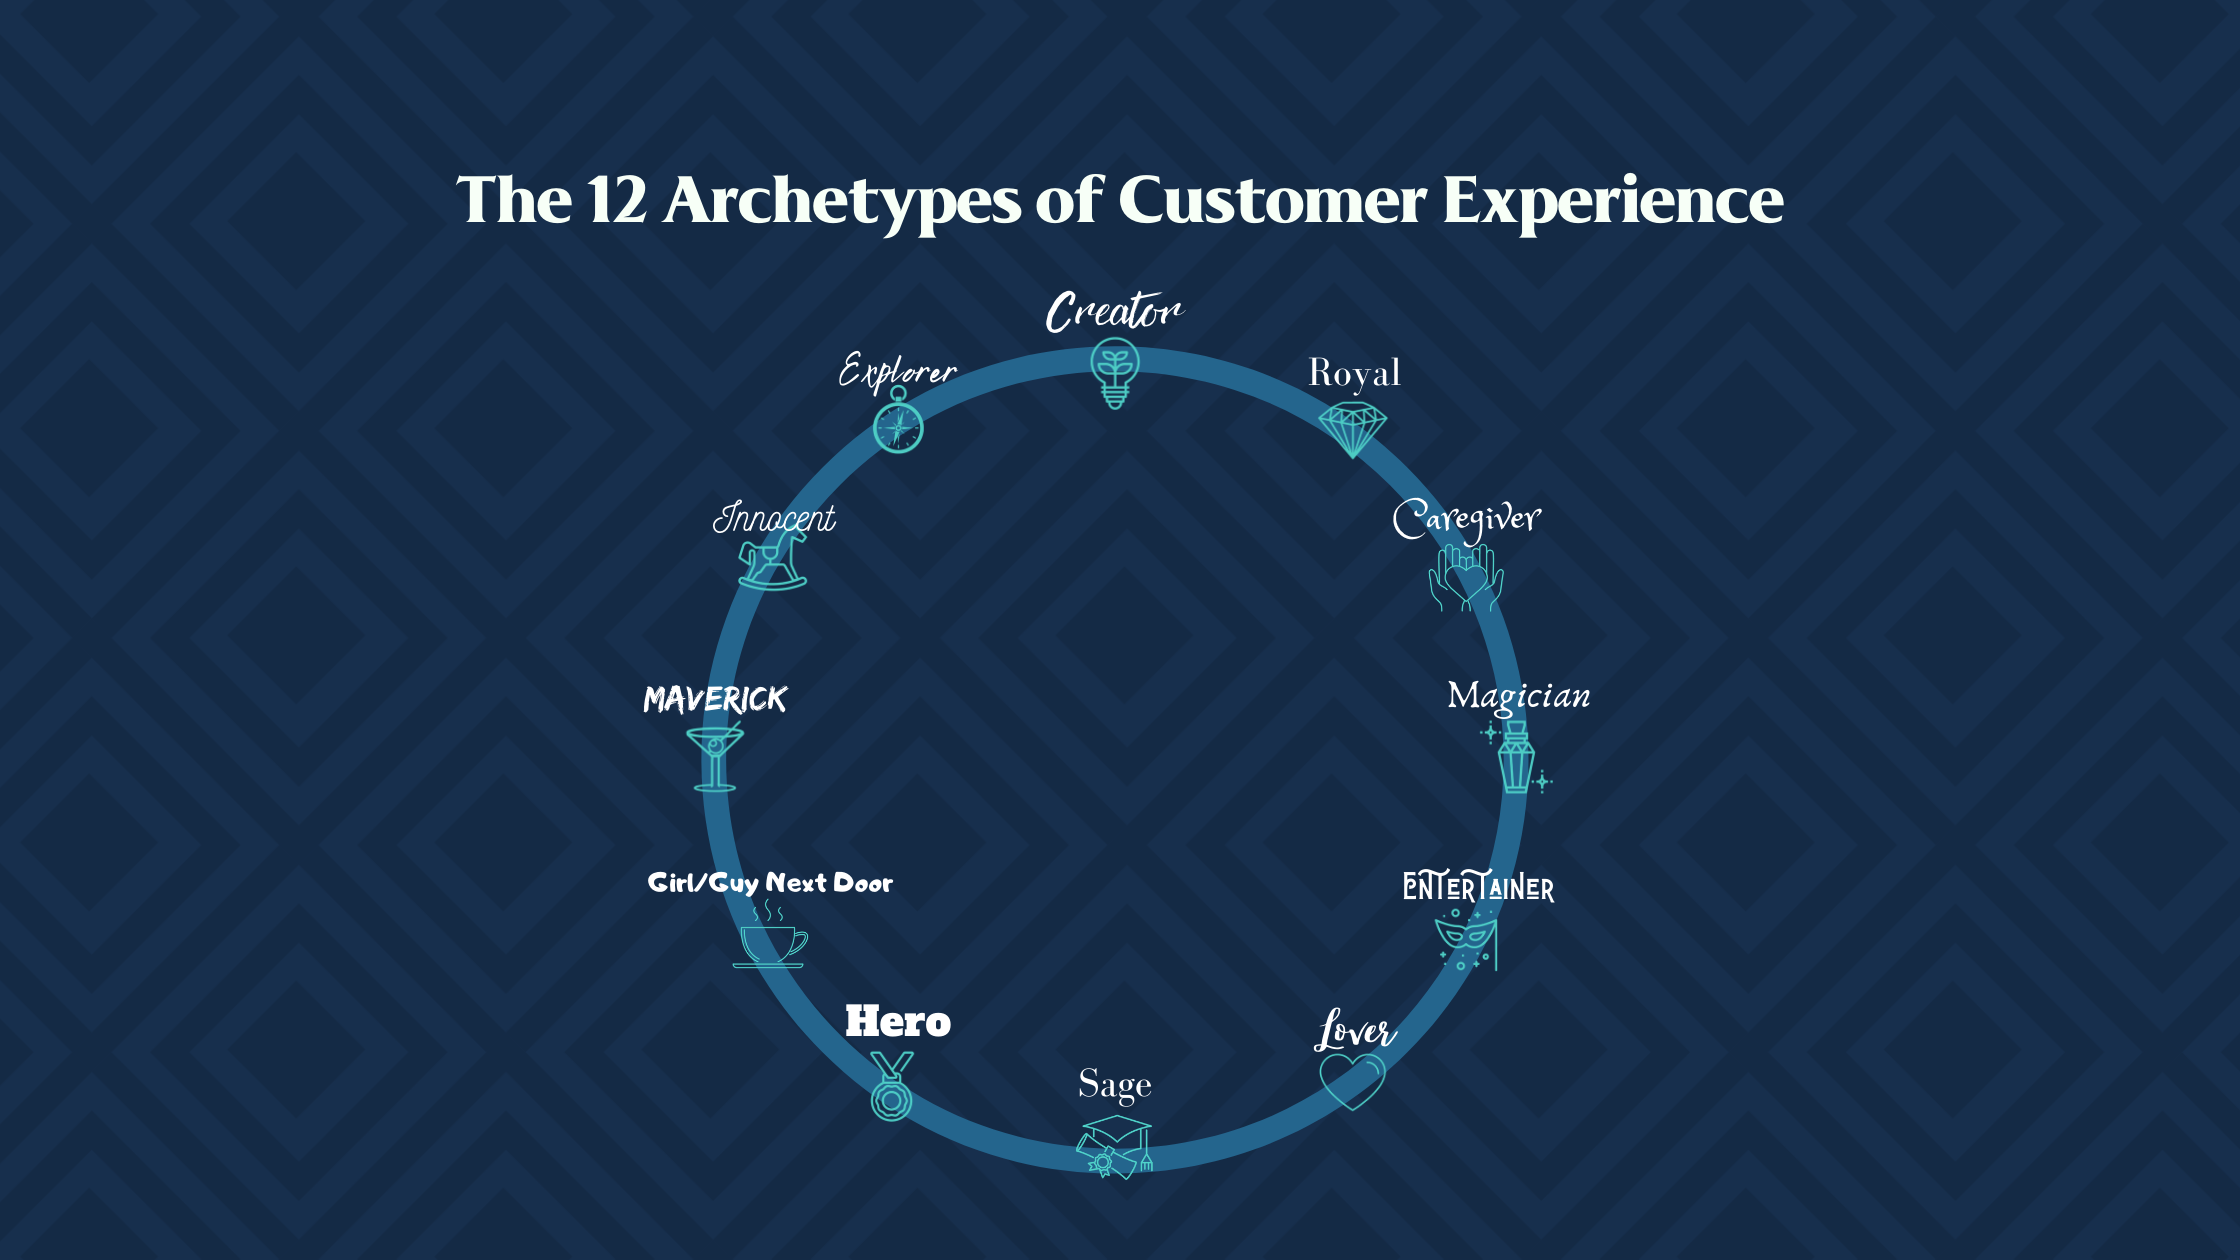 12 archetypes of customer experience; such as Creator, Hero